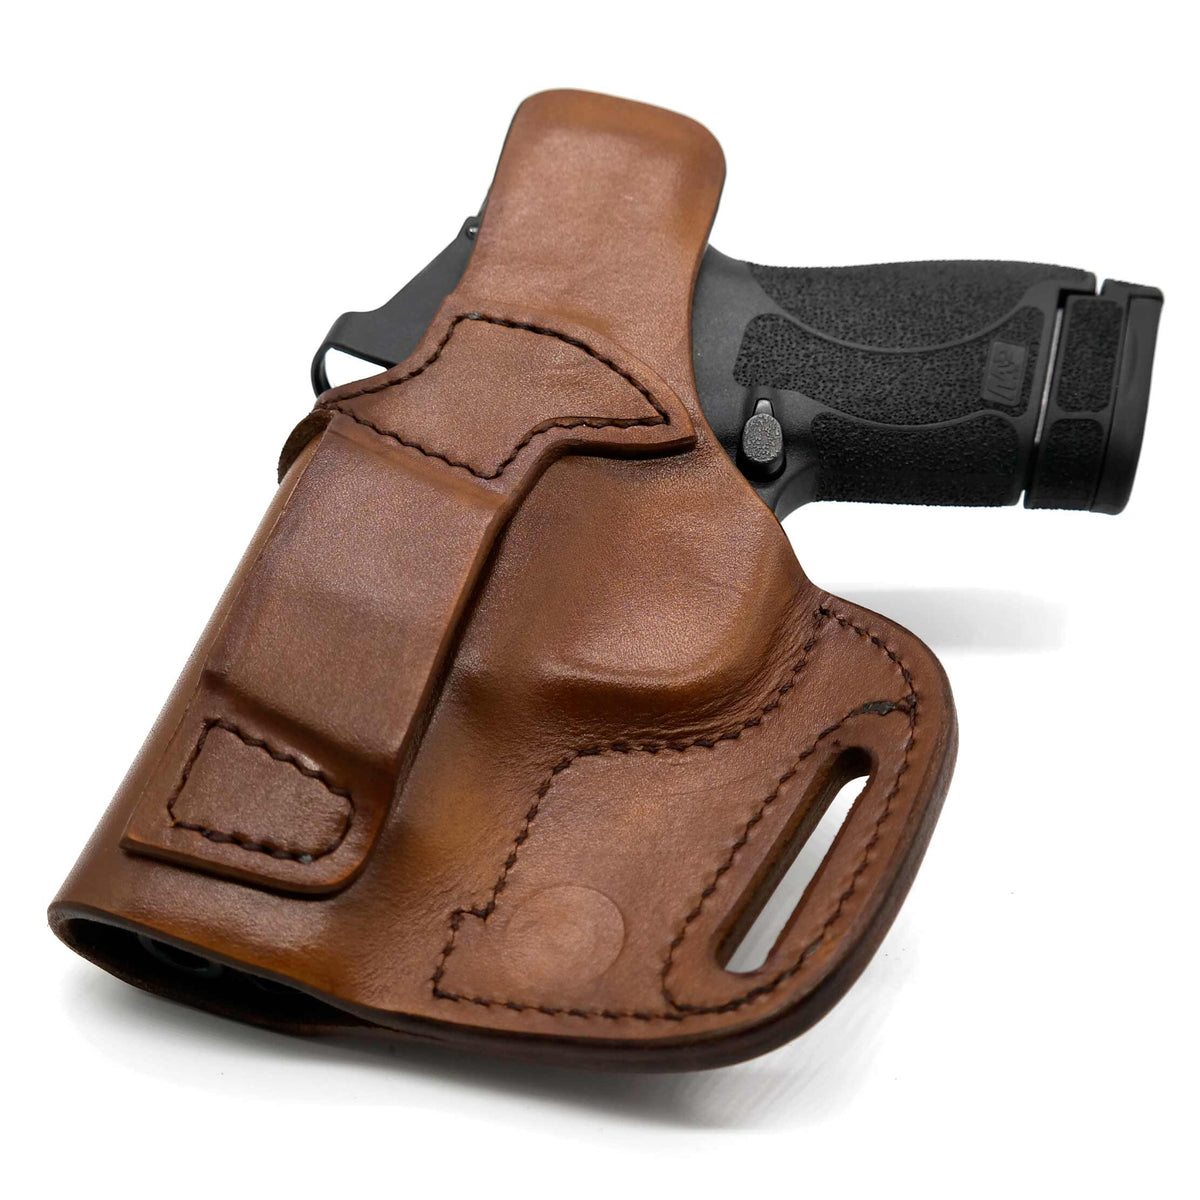 Marshal™ ROR Reflex-Optics-Ready OWB Holster